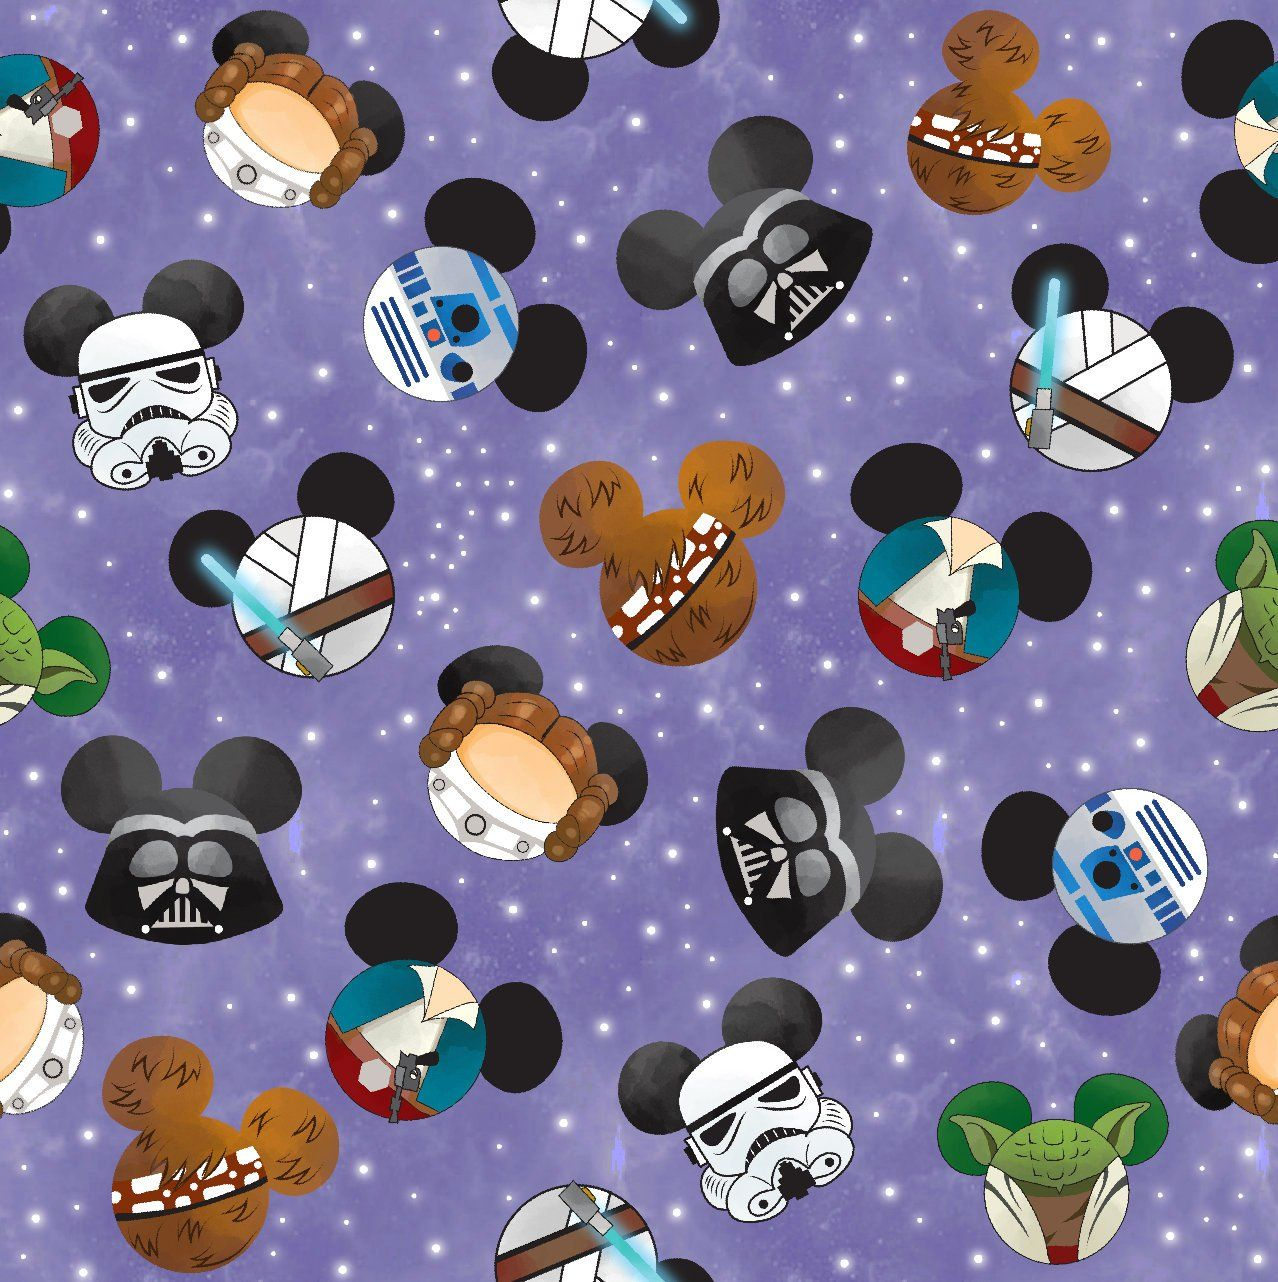 Star Wars fabric, cotton fabric, knit fabric, fabric by